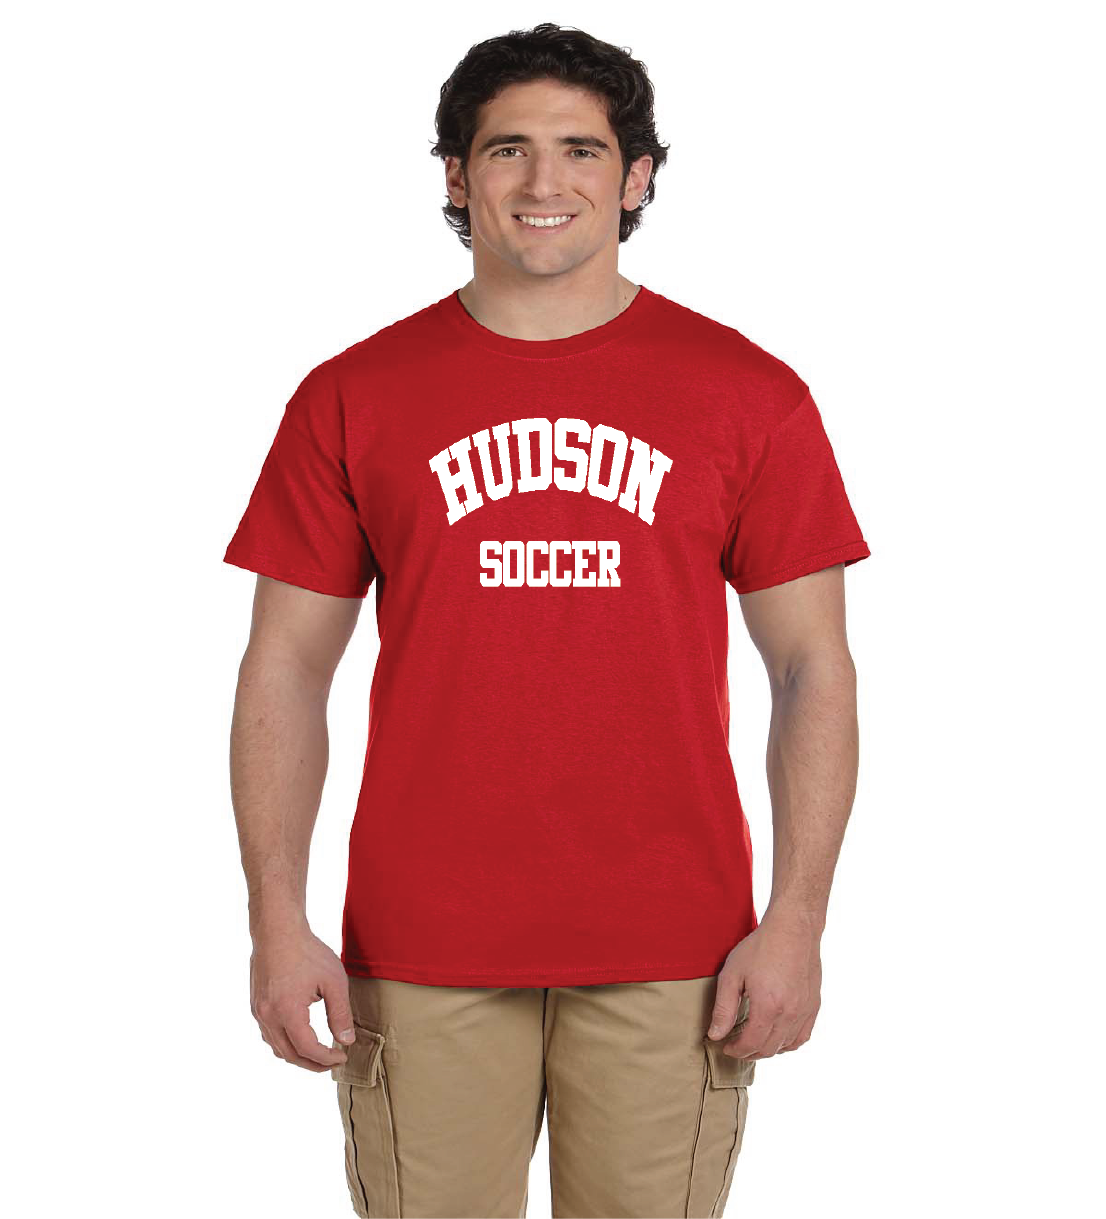 Red Hudson Soccer Short Sleeve Tee